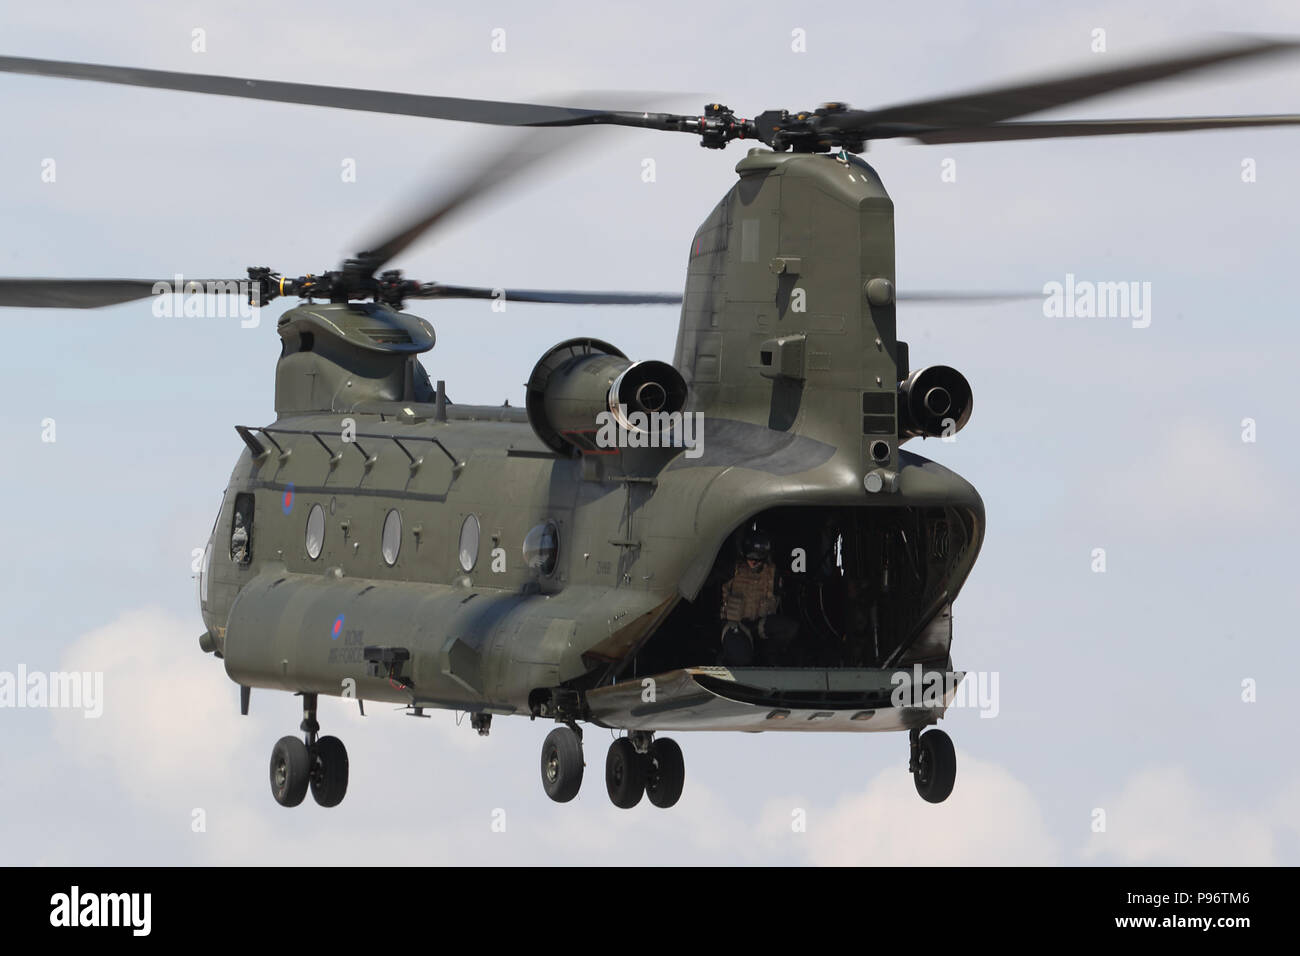 A Boeing CH-47 Chinook shows its versatility at the Royal International Air Tattoo 2018 at RAF Fairford, UK - Stock Image